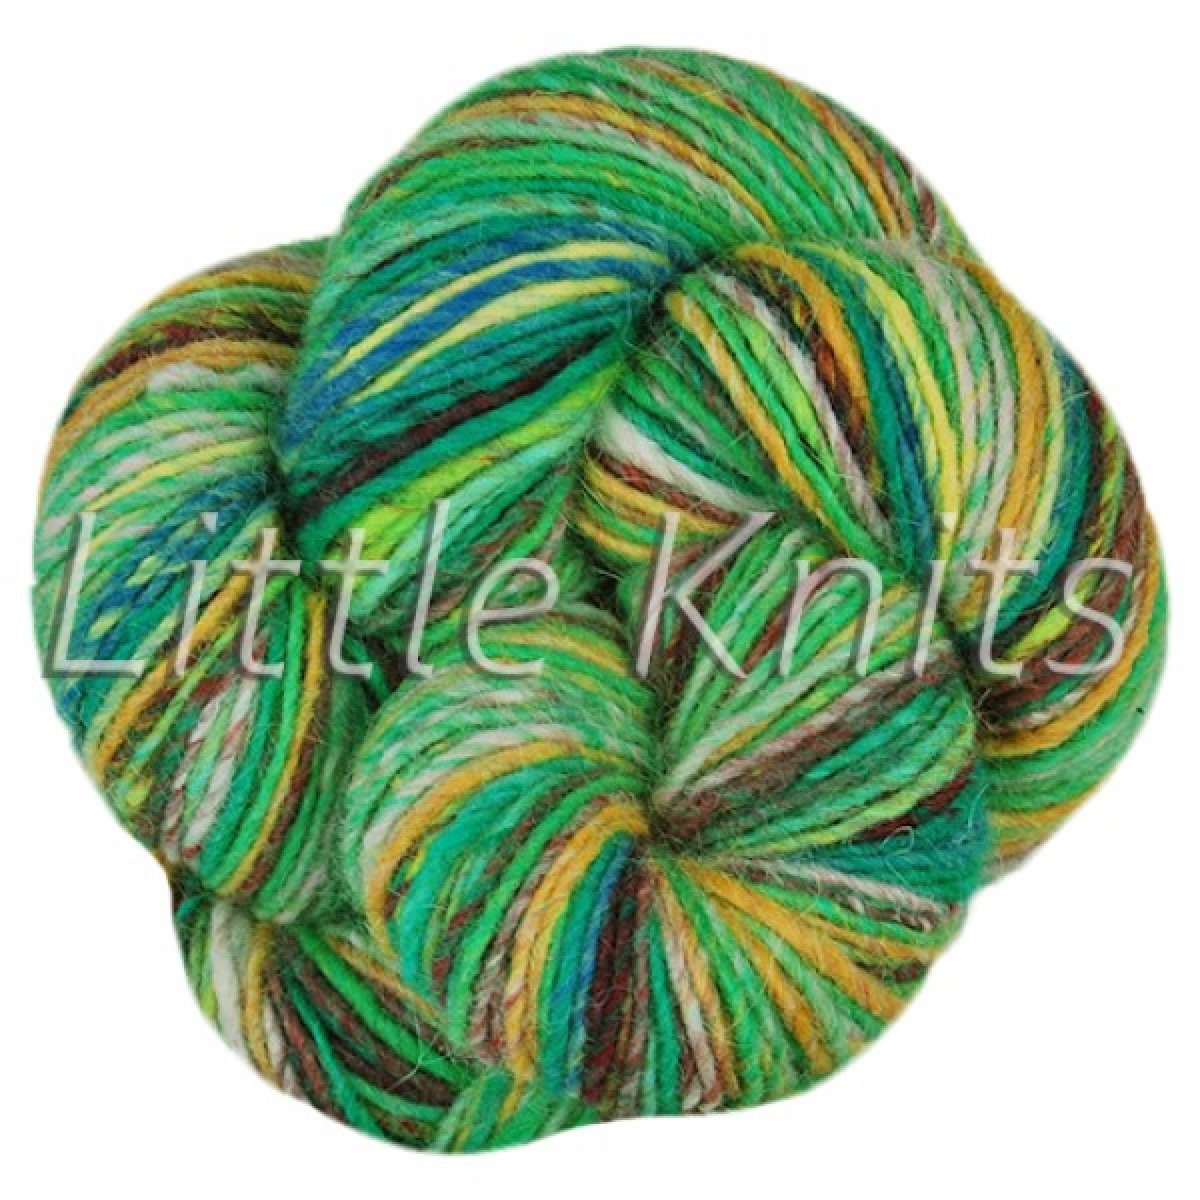 Noro Yarn Sale Elegant Little Knits noro Shiraito Color 24 Of Superb 49 Images noro Yarn Sale